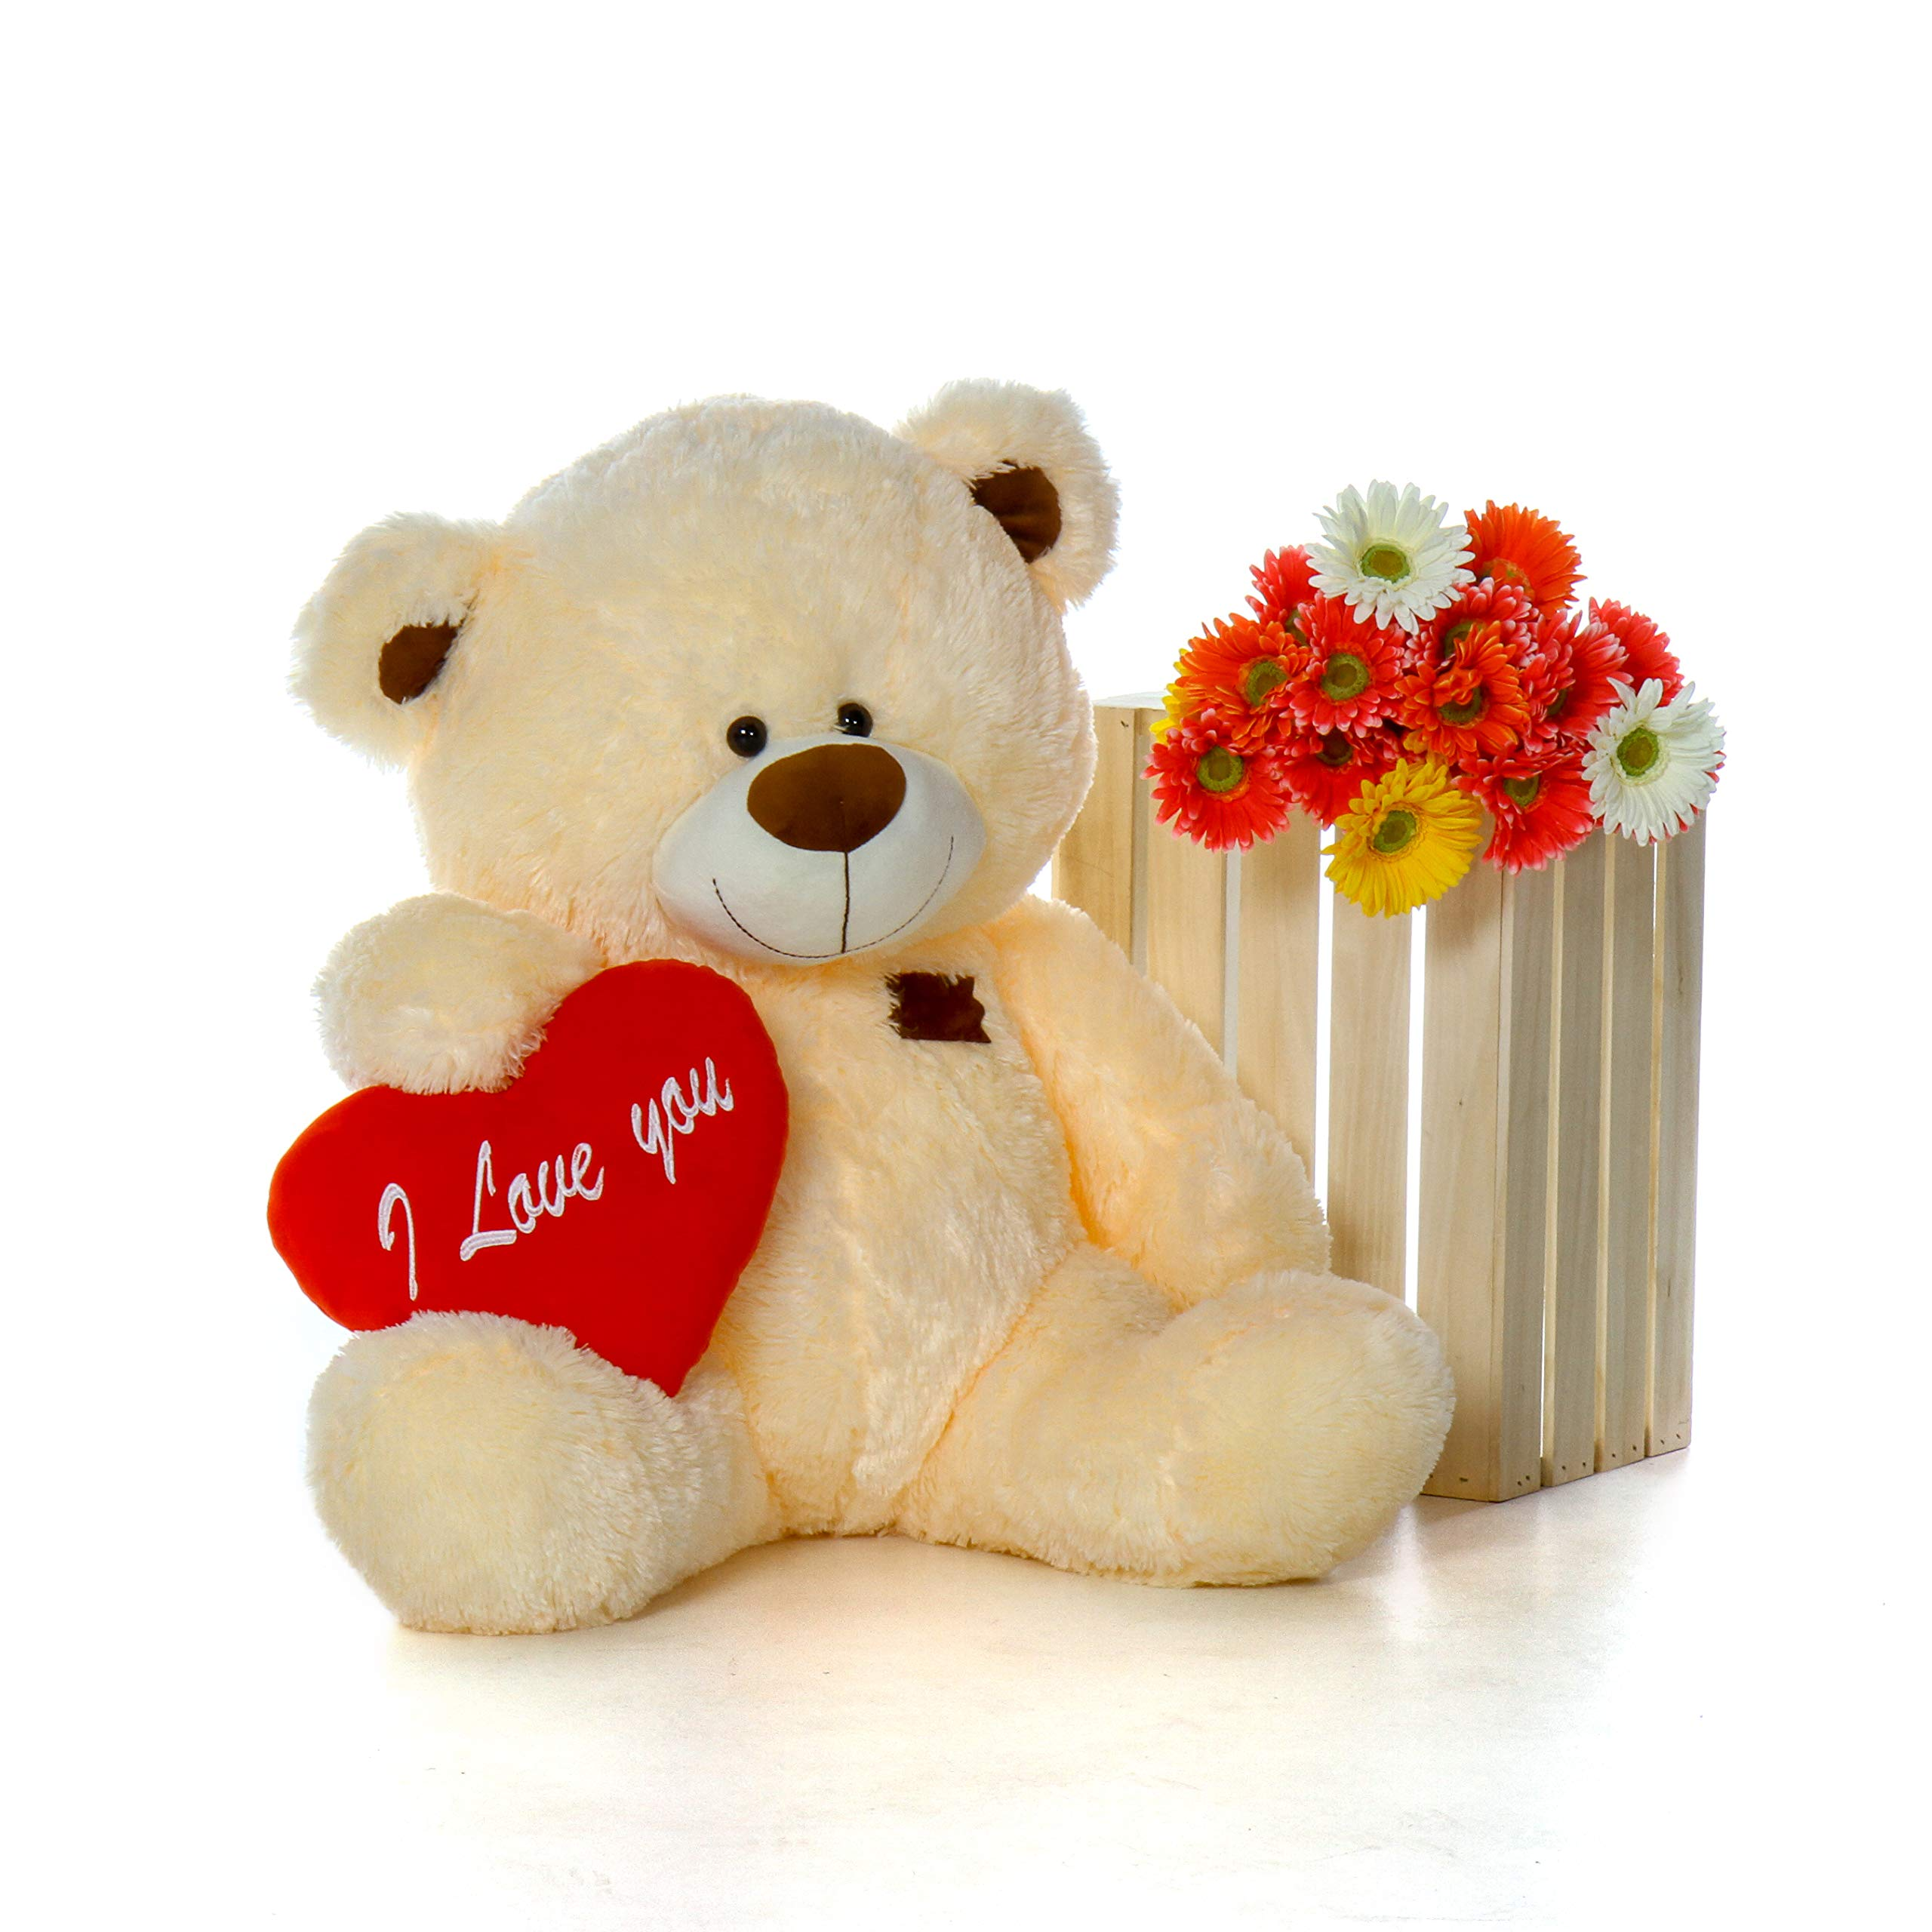 Giant Teddy Original Brand - Biggest Collection of Super Soft Stuffed Teddy Bears (Pillow Heart Included) (Vanilla Cream, Huge) by Giant Teddy